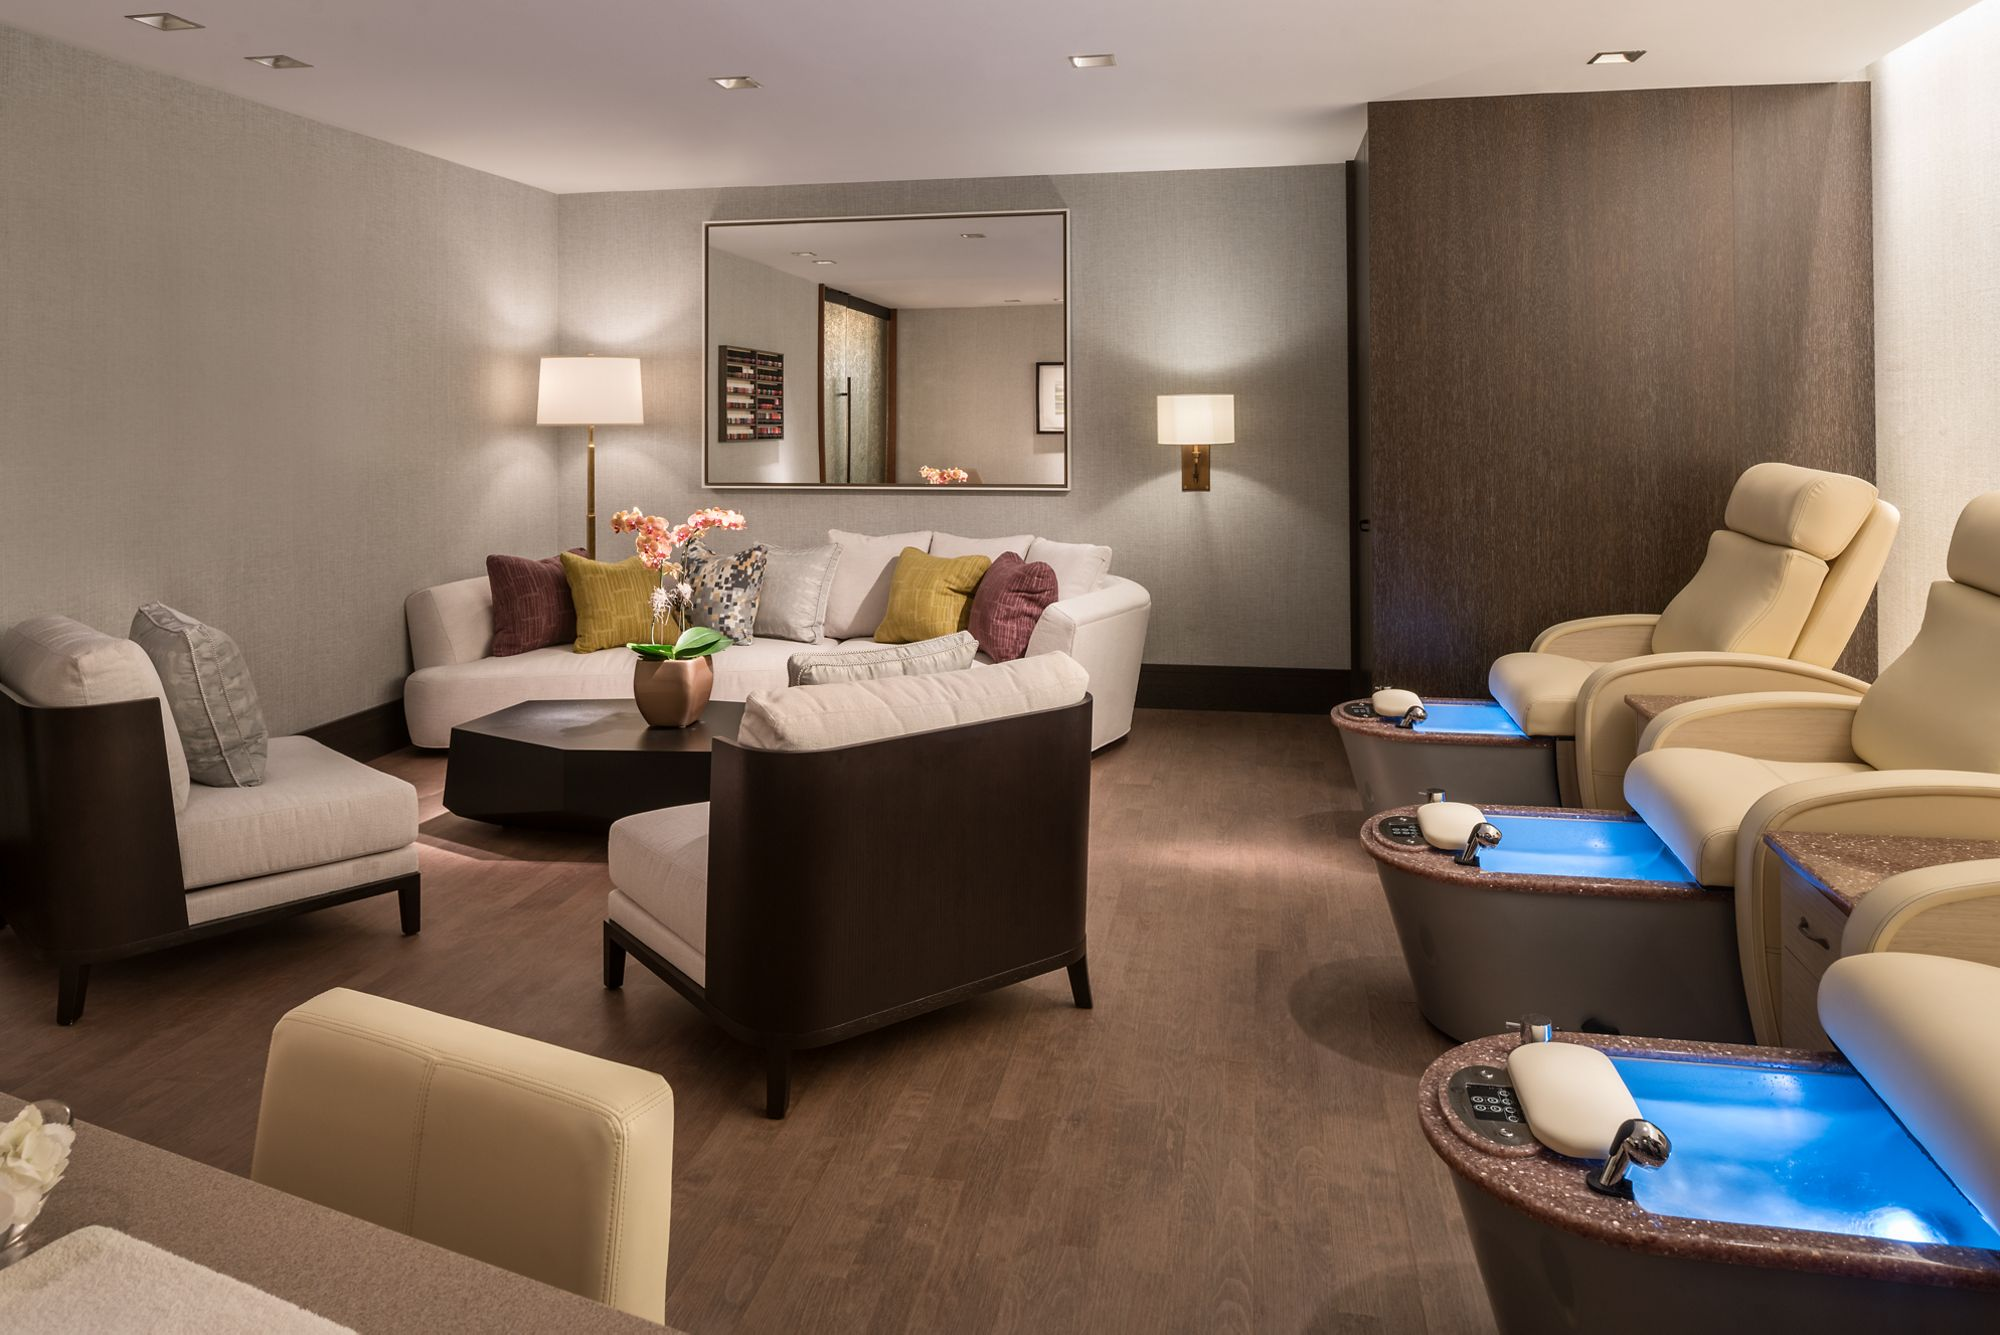 Sensational Spas In Chicago Chicago Spa Hotel The Ritz Carlton Chicago Pabps2019 Chair Design Images Pabps2019Com